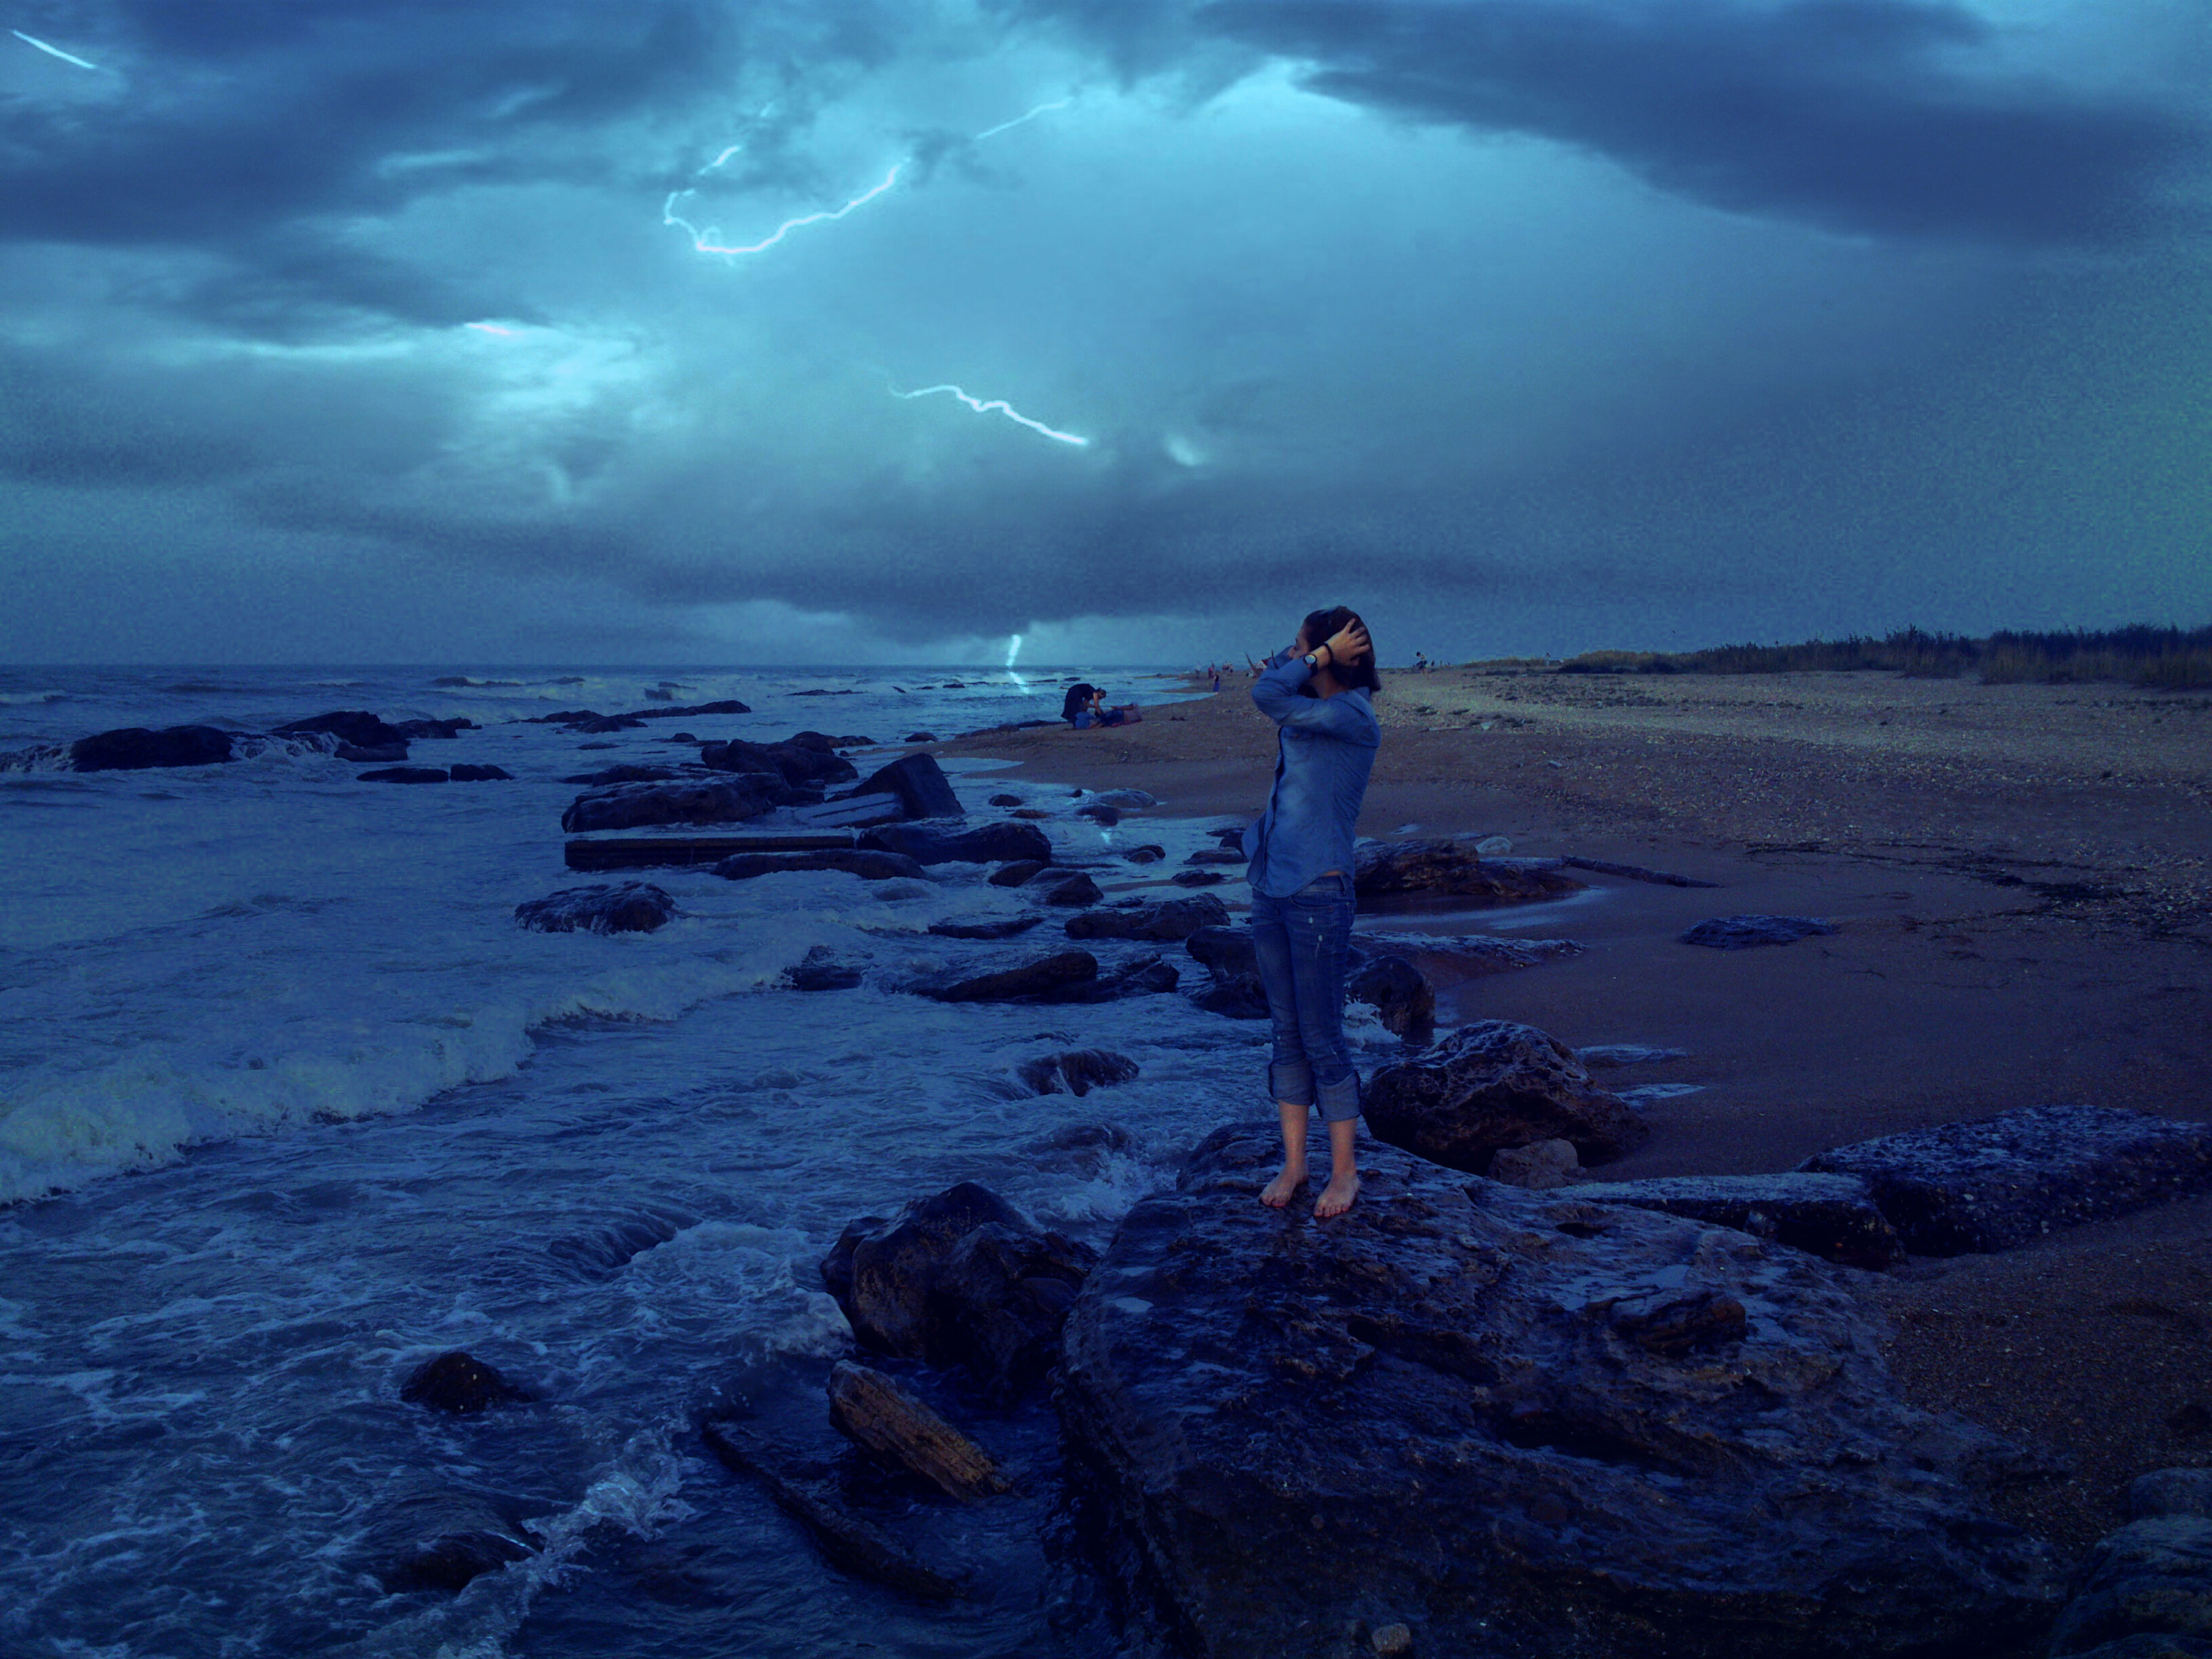 water, sky, sea, cloud - sky, beach, full length, shore, lifestyles, leisure activity, tranquil scene, standing, scenics, tranquility, beauty in nature, horizon over water, rear view, cloudy, nature